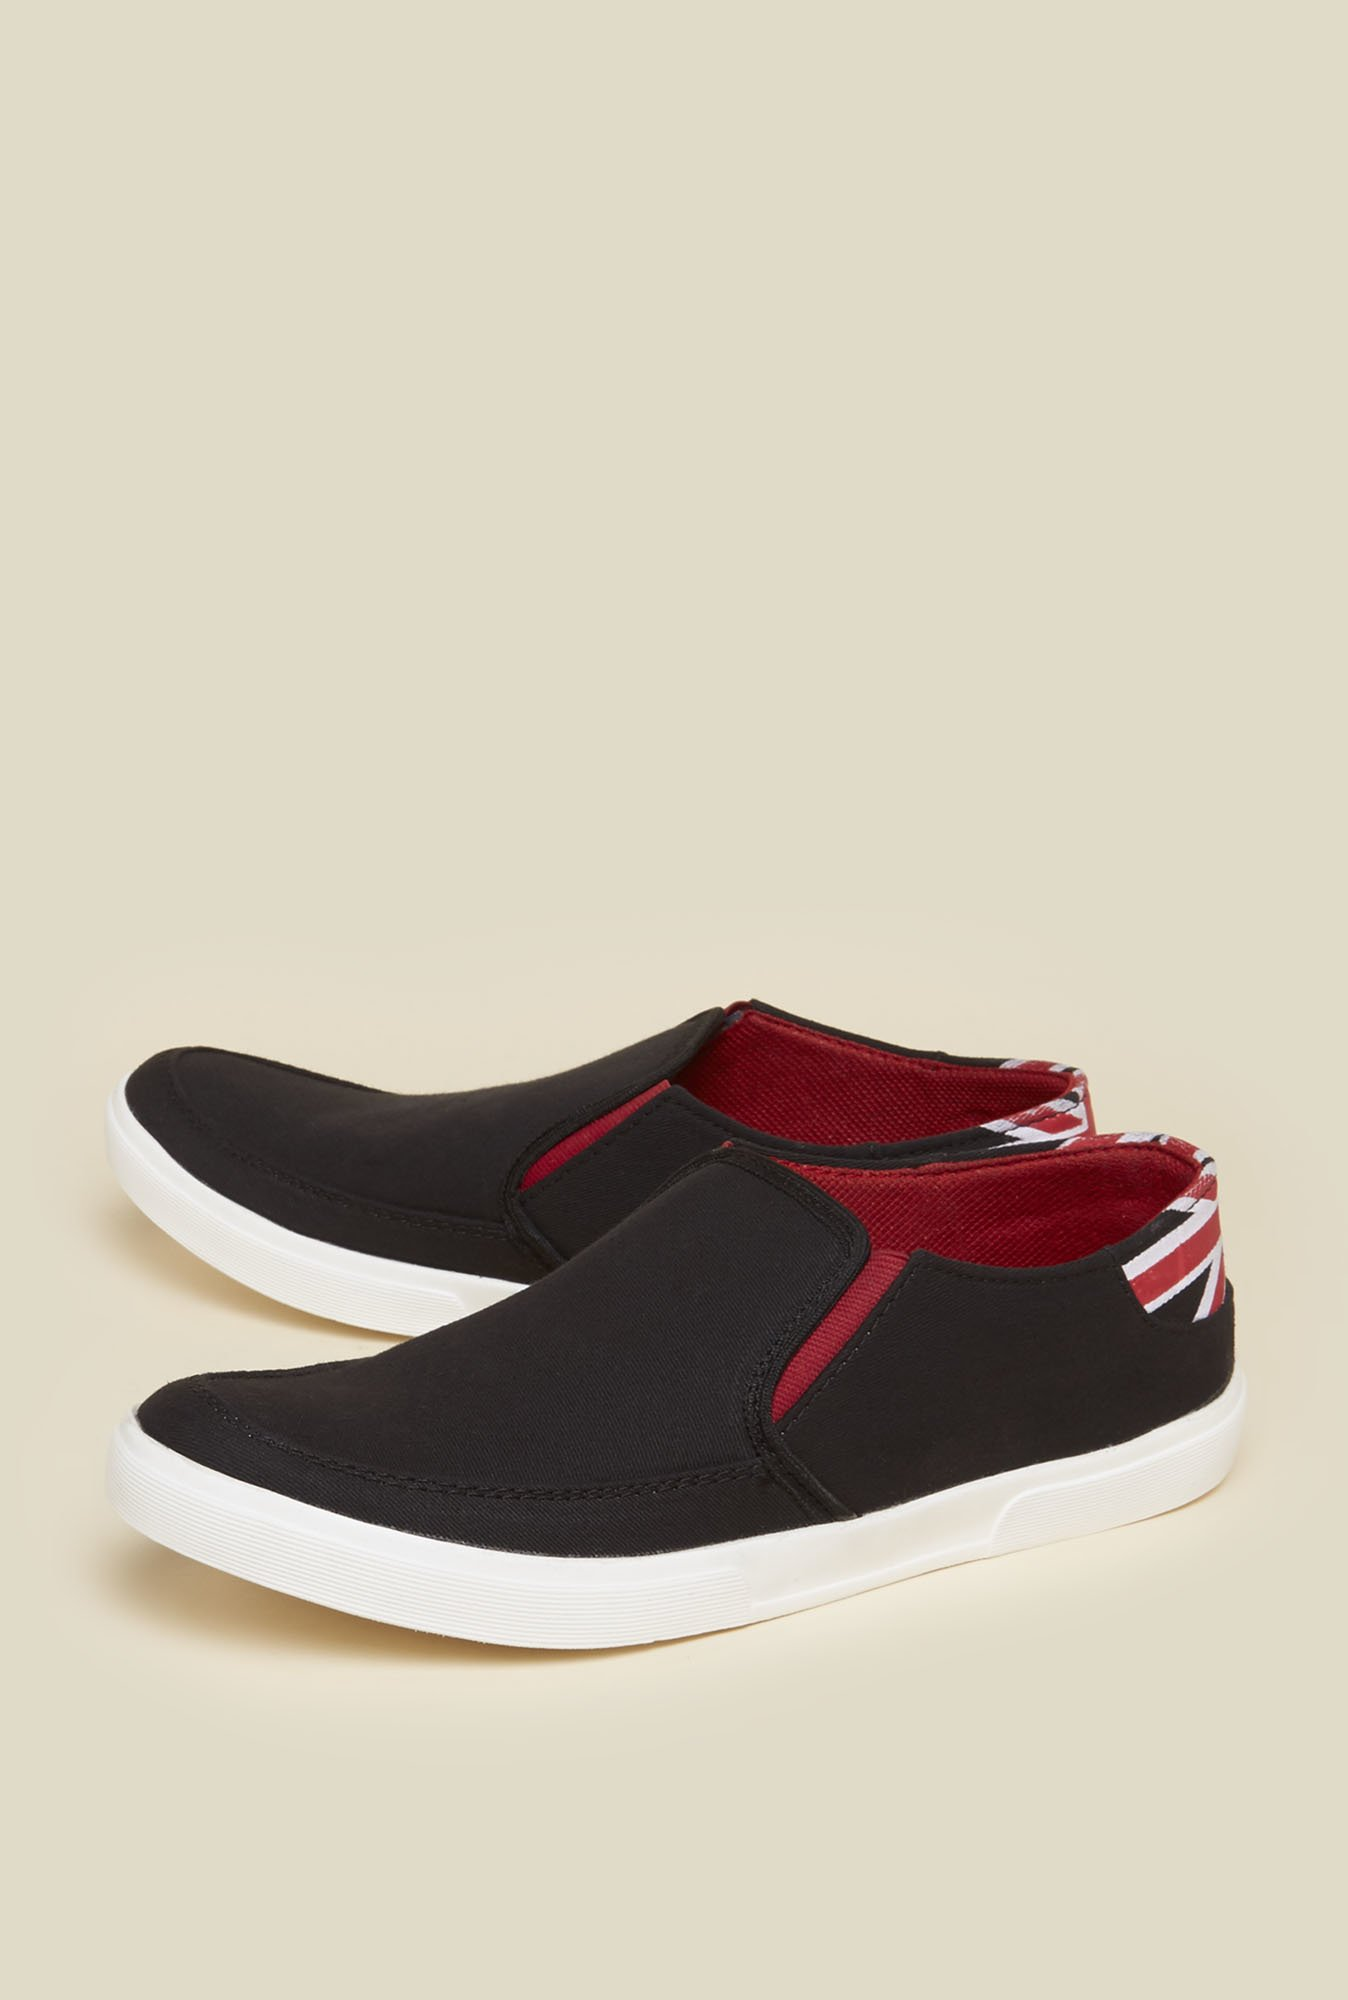 Zudio Black Slip On Shoes